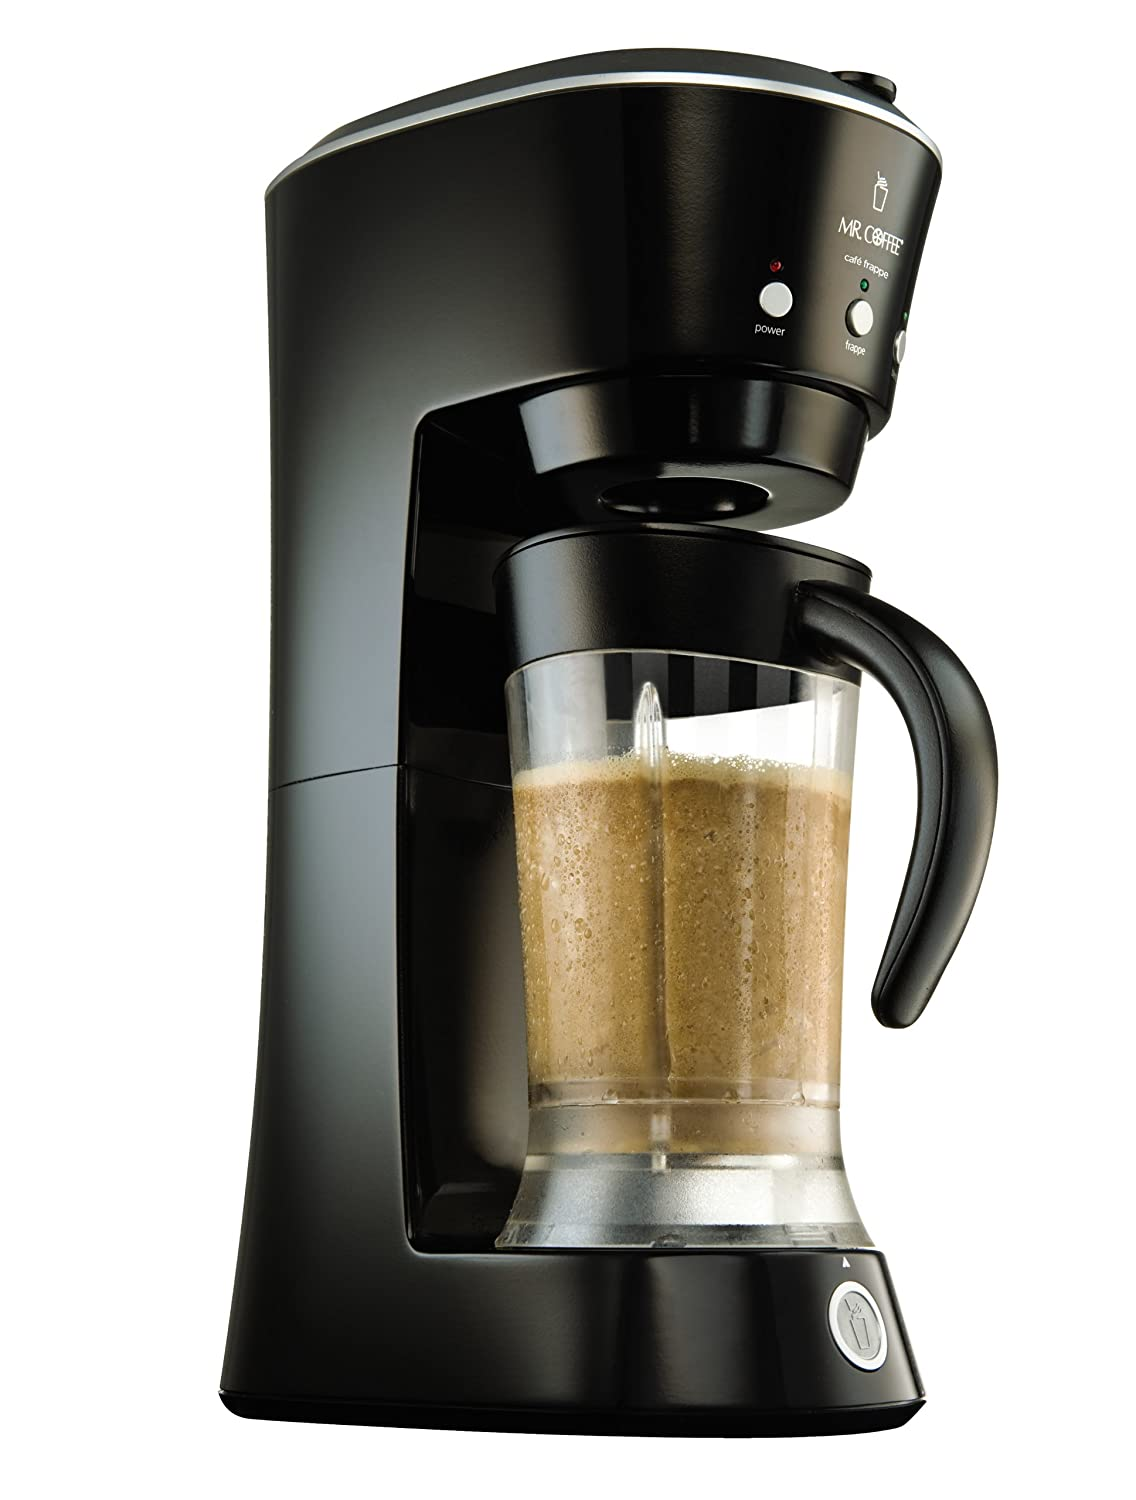 Mr. Coffee BVMC-FM1 20-Ounce Frappe Maker Review